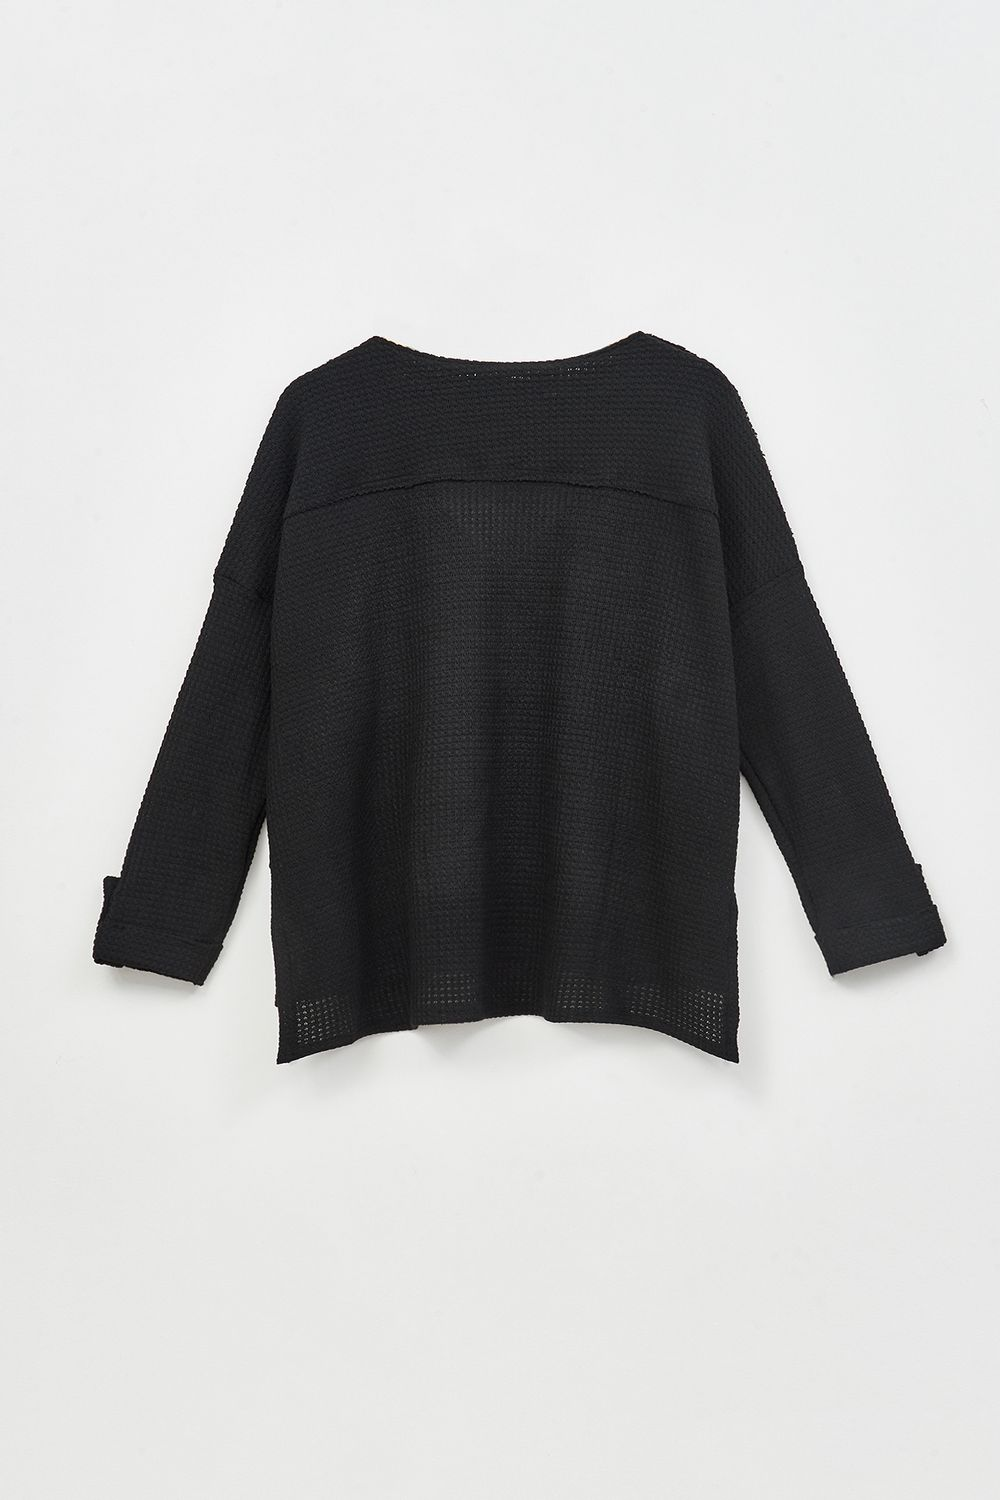 Sweater-Bahia-Negro-38